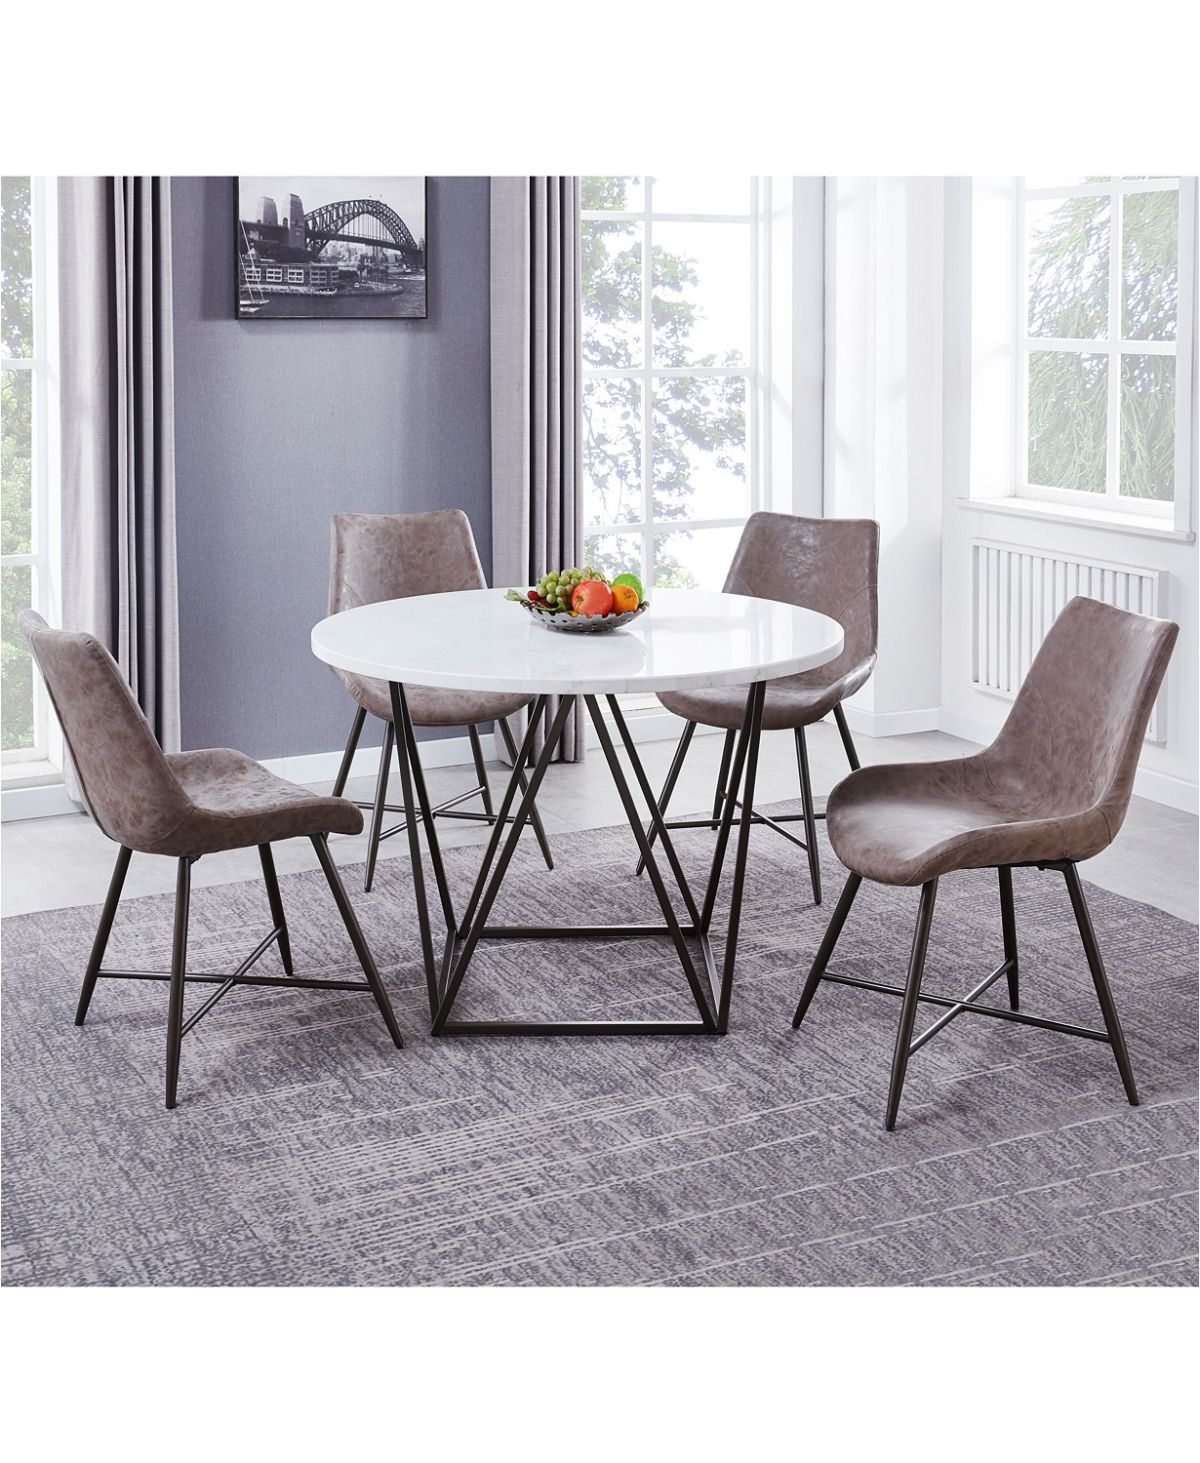 Macy S Furniture Sale The 10 Best Black Friday Deals To Shop Now Real Homes